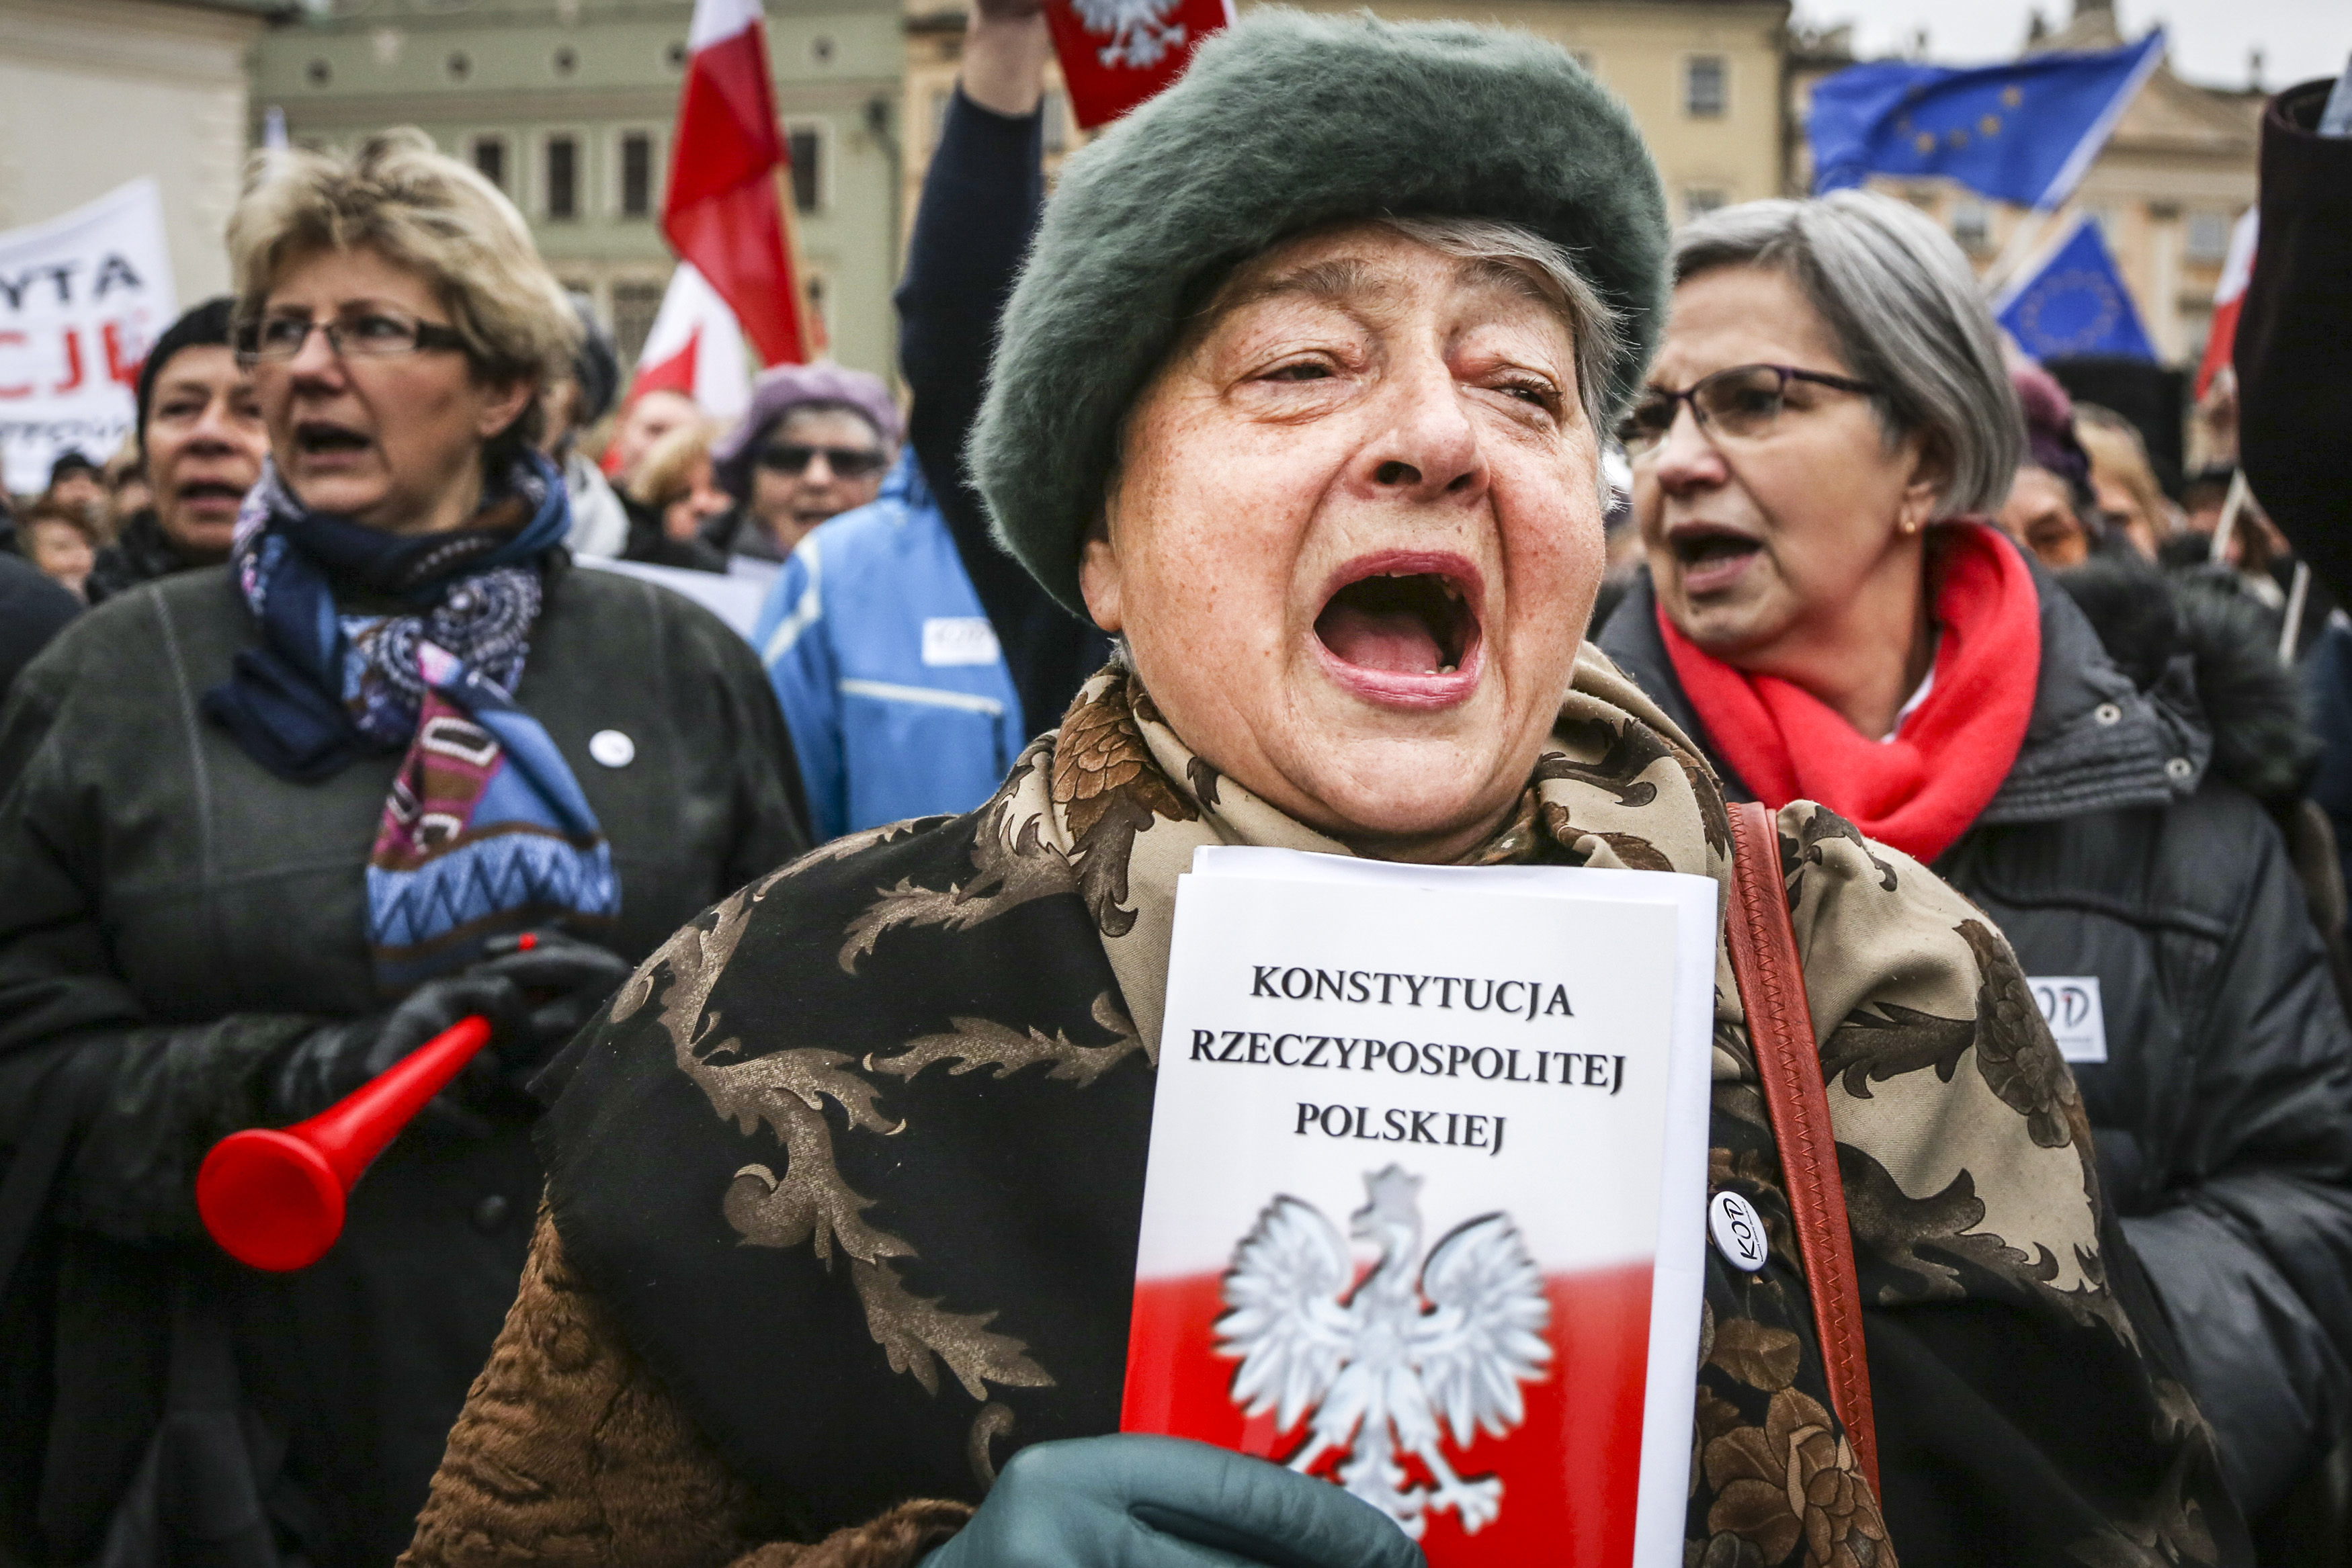 Poland is having a constitutional crisis. Here's why you should care.